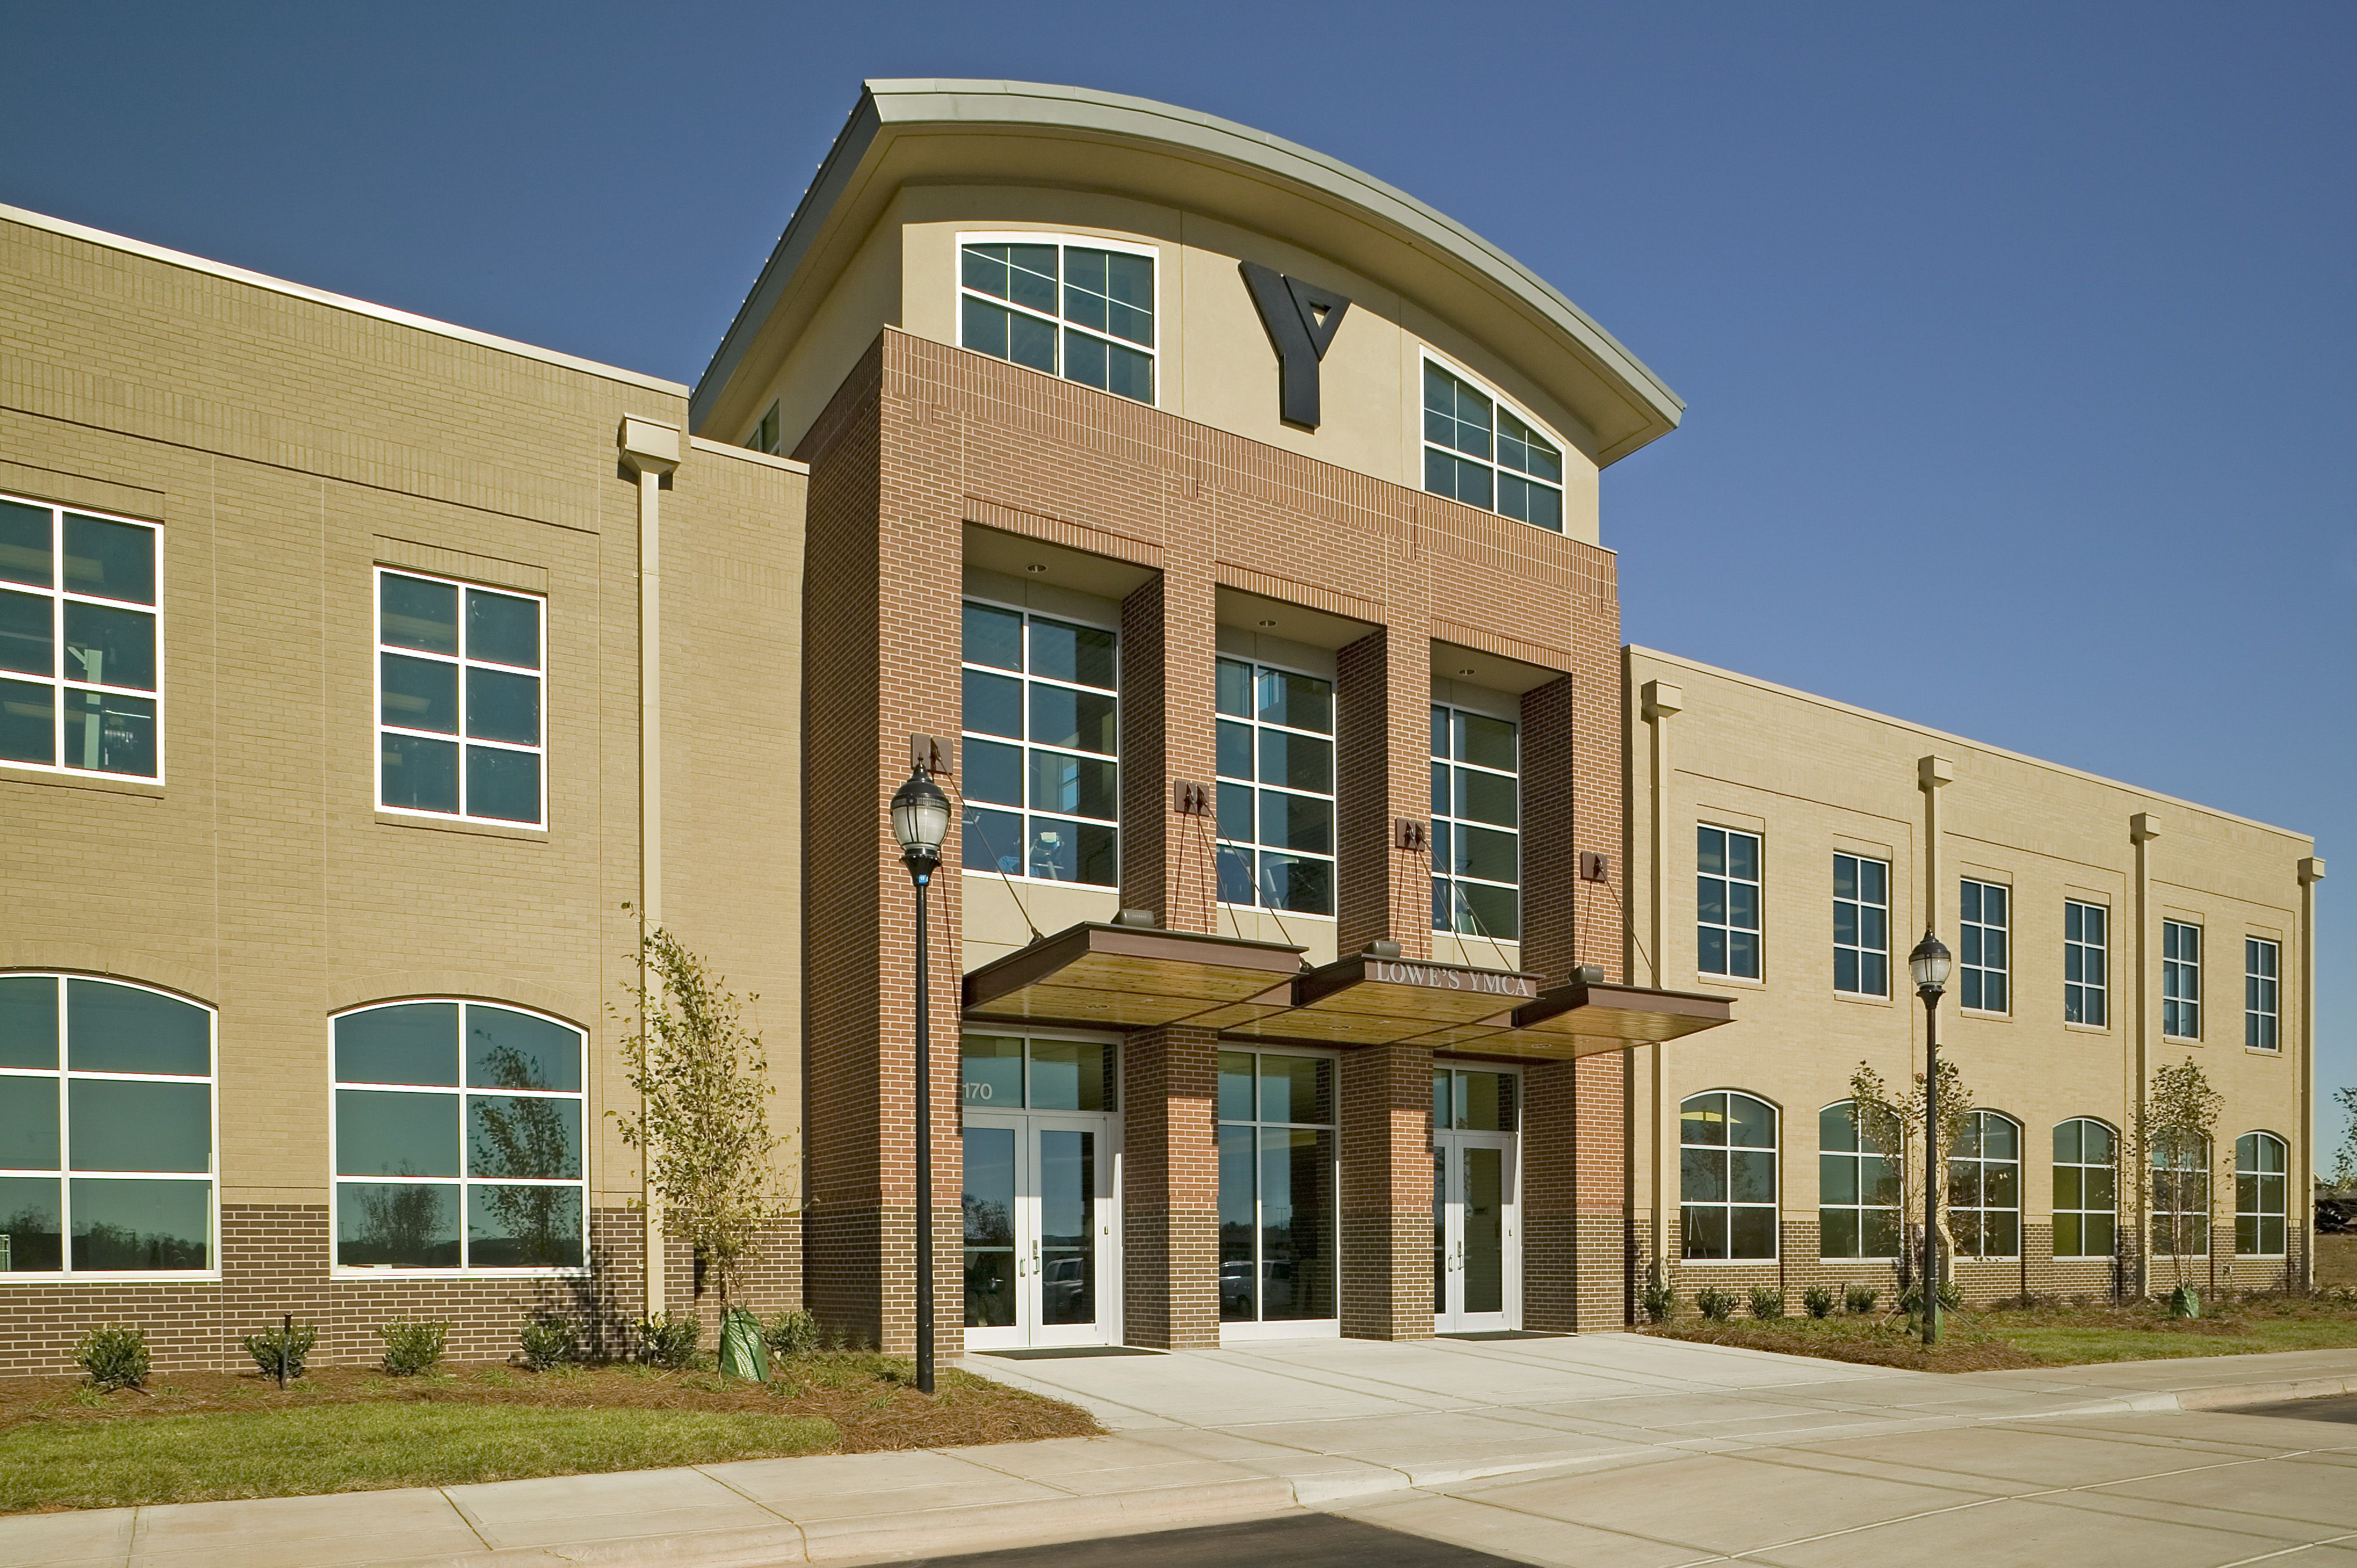 Lowe's YMCA Mooresville, NC | Lawrence Group #architecture #design on lowe's diy plans, lowe's landscaping plans, lowe's kitchen plans, lowe's gardening plans,